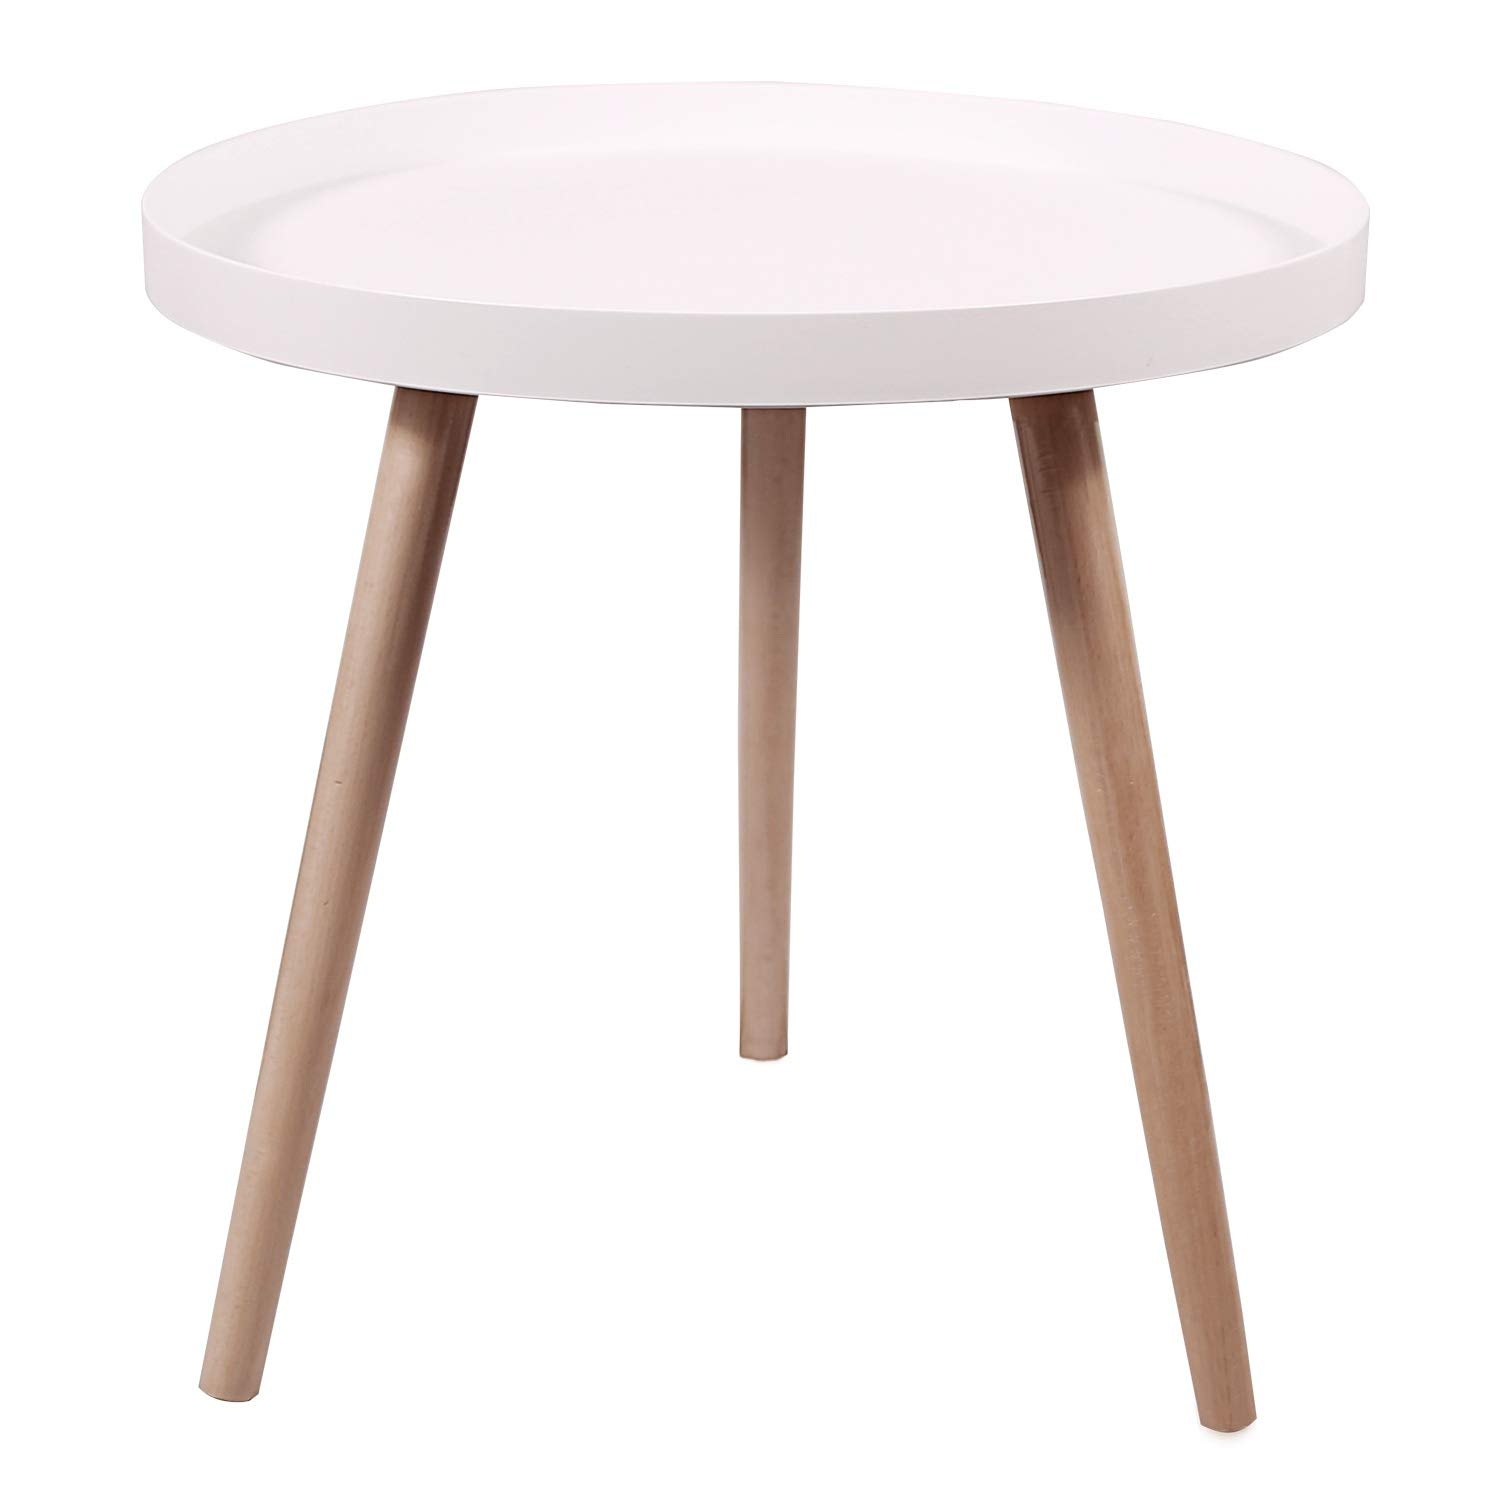 REDCAMP Nesting Coffee Tables for Living Room, Mid Century Modern White Round Side Tables for Small Spaces with Wooden Legs by REDCAMP